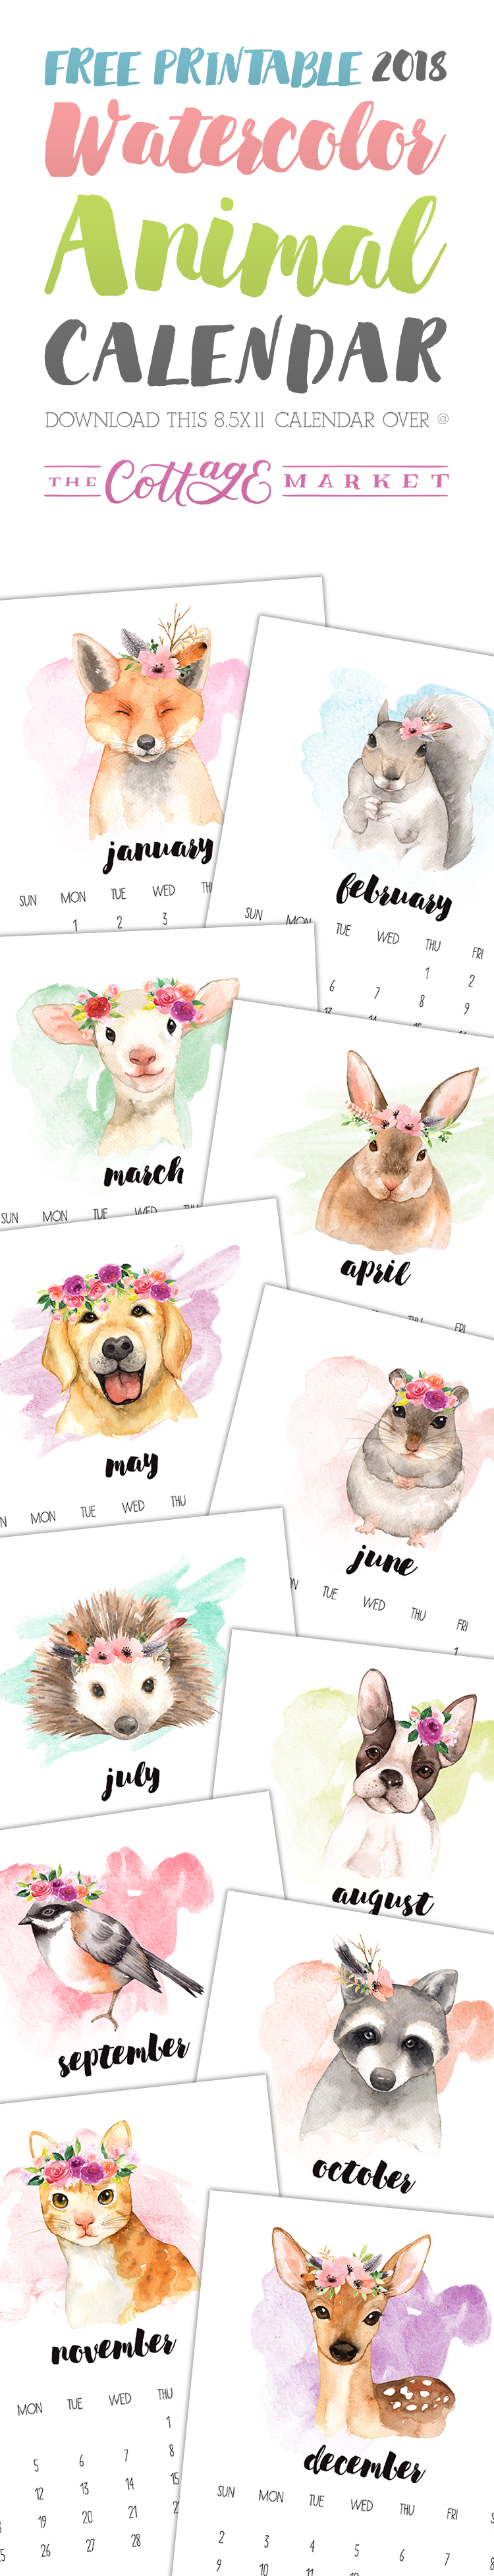 The Cottage Market's FREE Printable Calendar is here -- this year, it's a Watercolor Animal Calendar